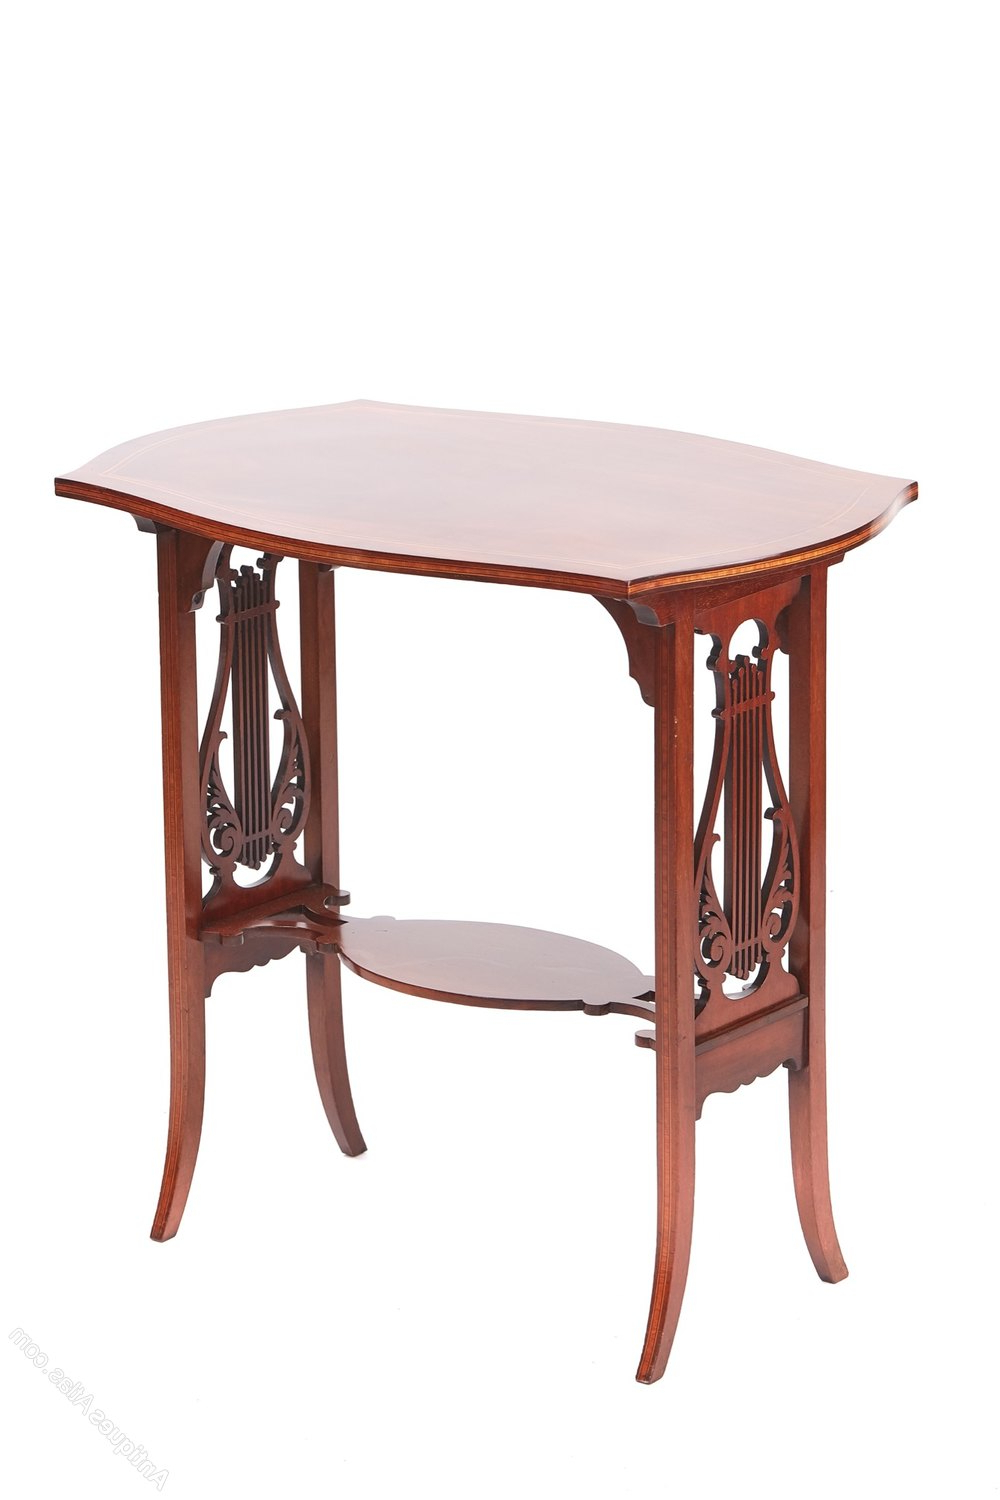 Most Current Lyre Coffee Tables Intended For Edwardian Inlaid Mahogany Lyre End Support Table – Antiques Atlas (View 13 of 20)